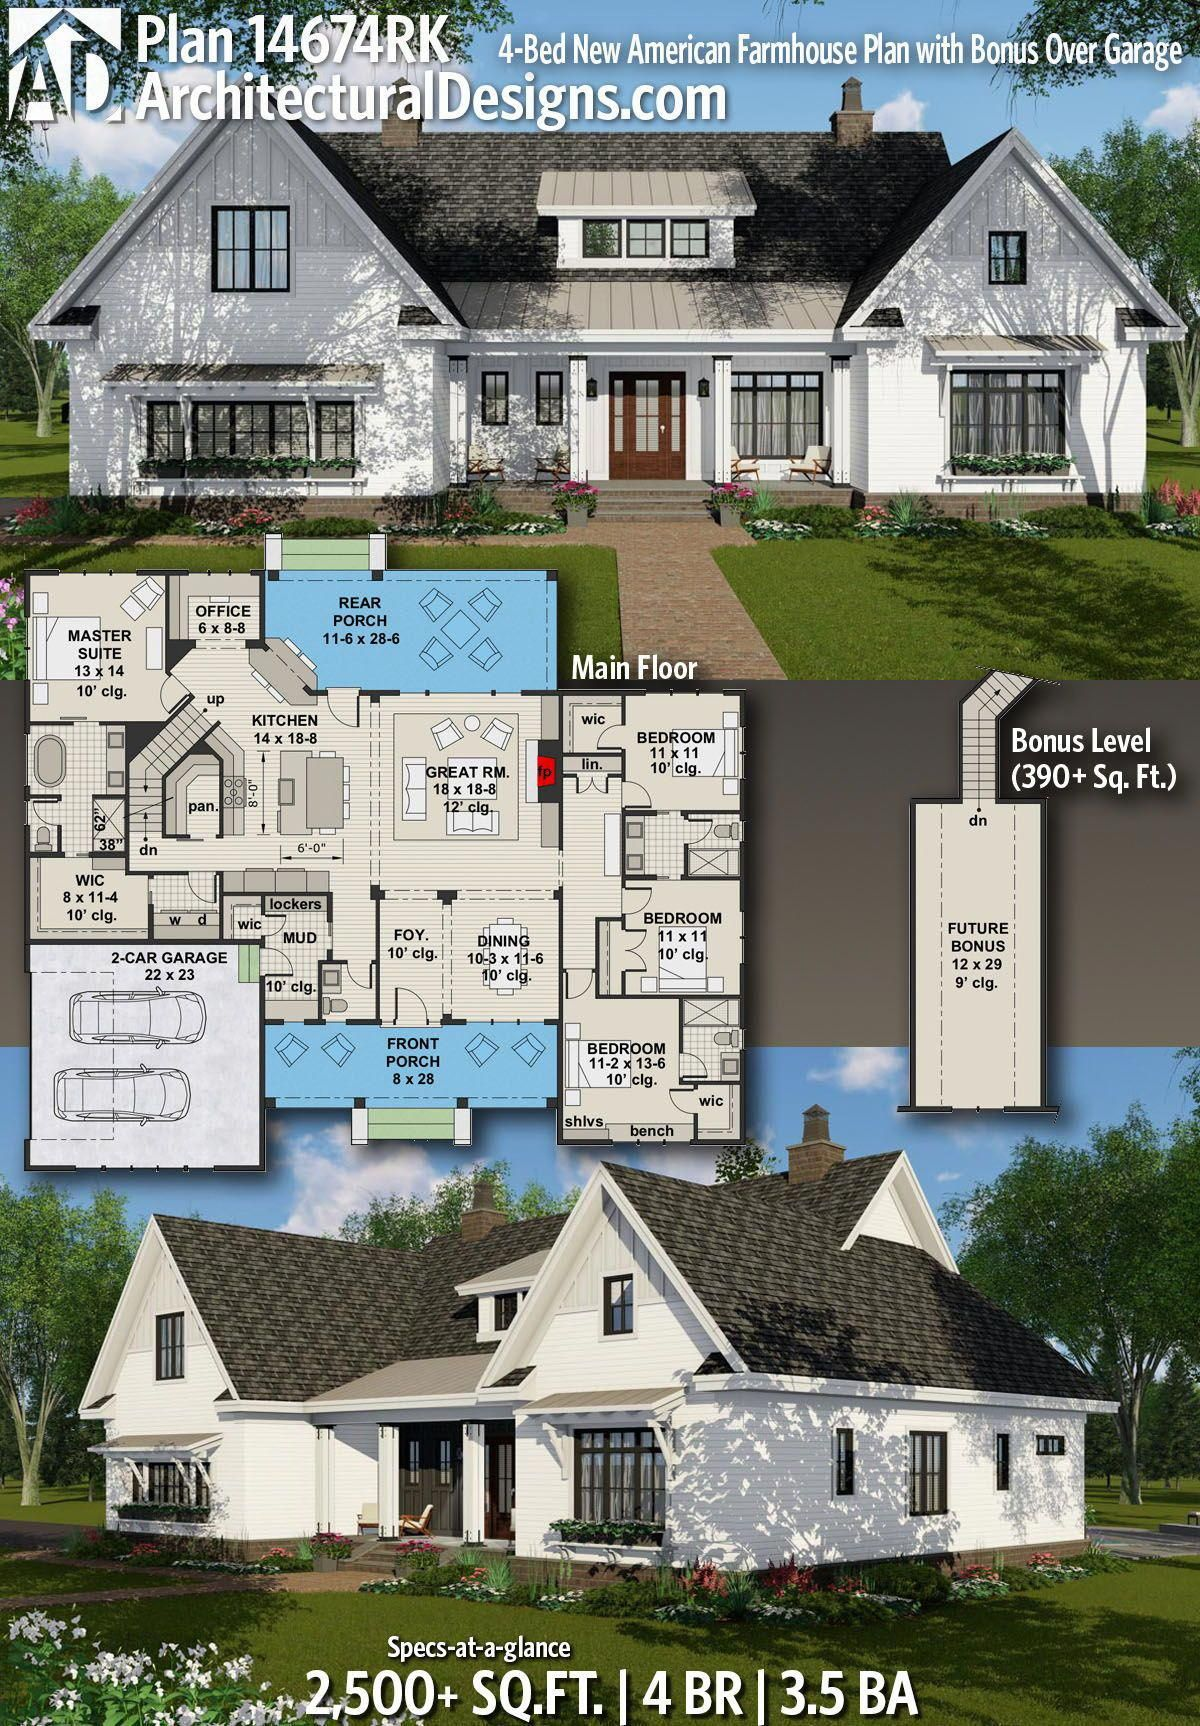 Love This Floor Plan Architectural Designs New America House Plan 14674rk Gives You 4 Bedrooms 3 New House Plans Modern Farmhouse Plans House Plans Farmhouse